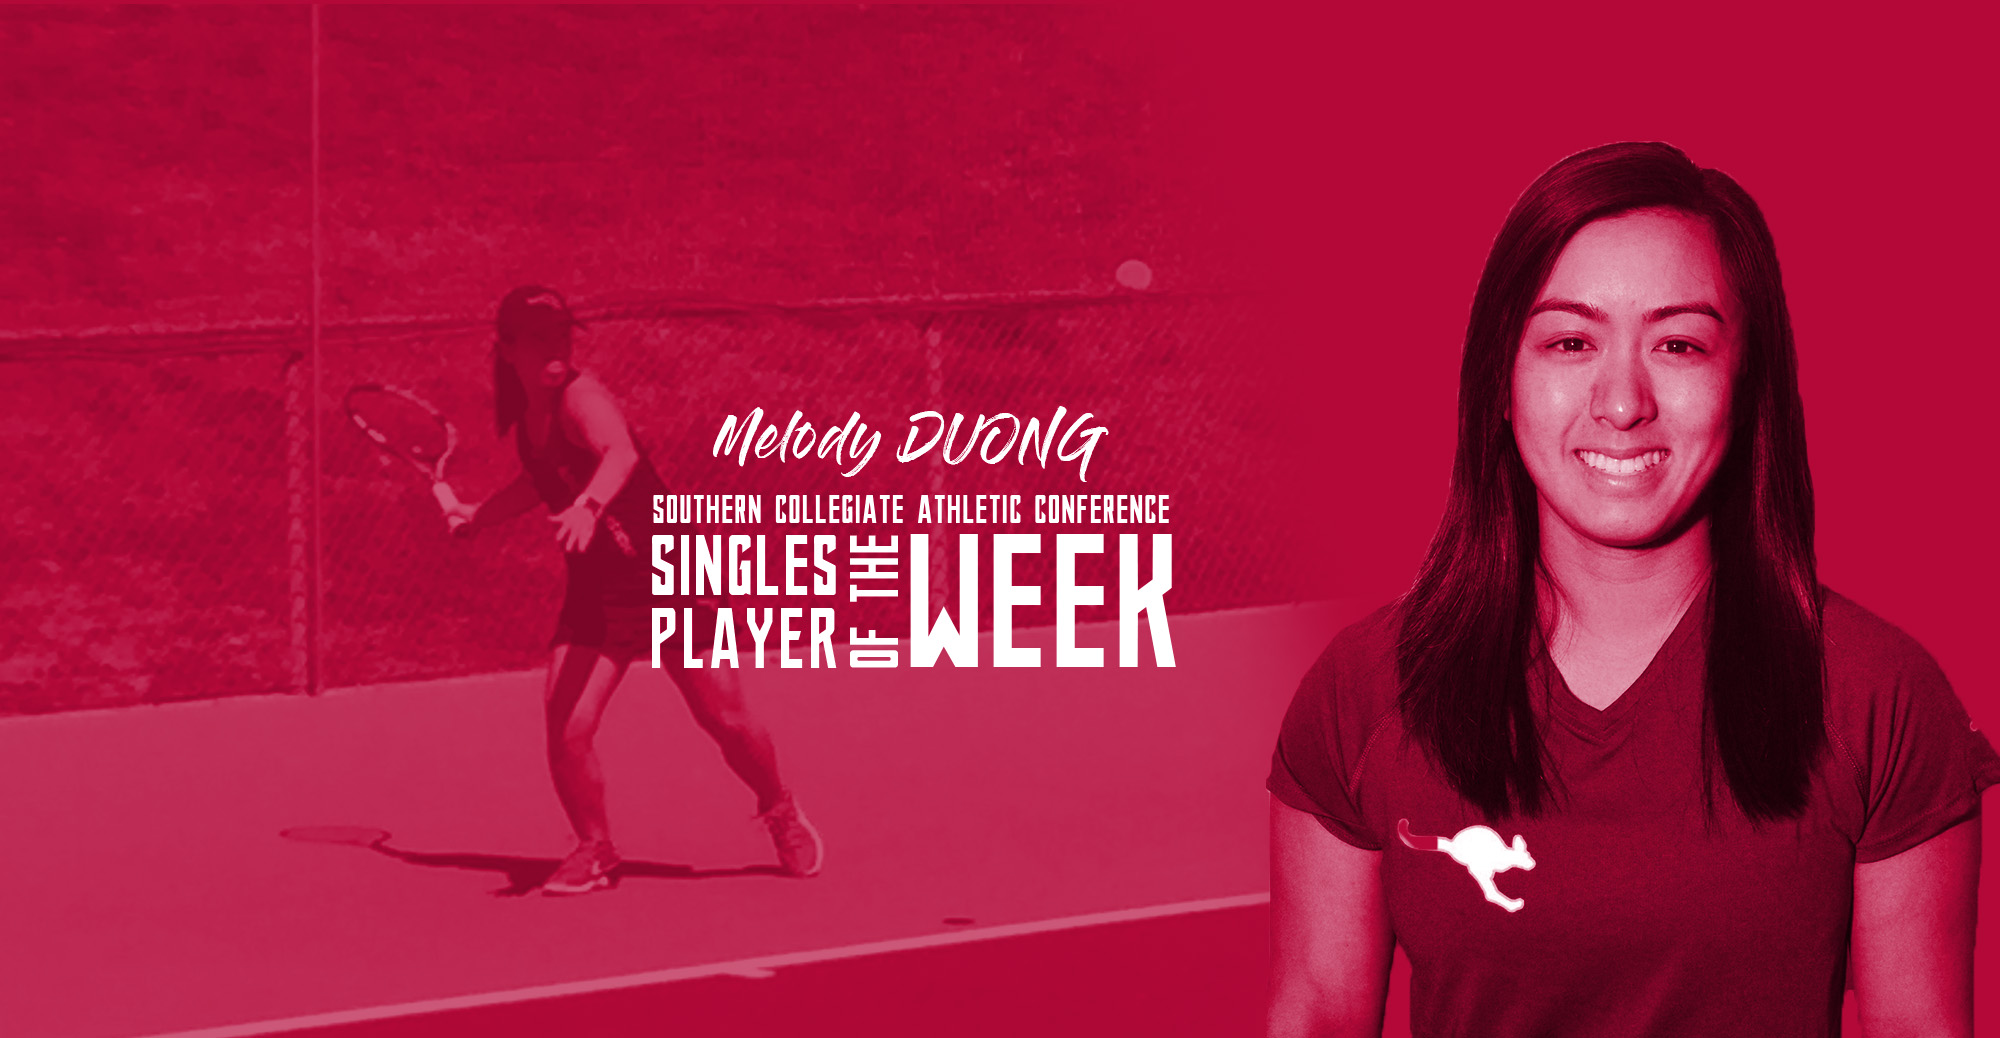 Duong Named SCAC Singles Player of the Week